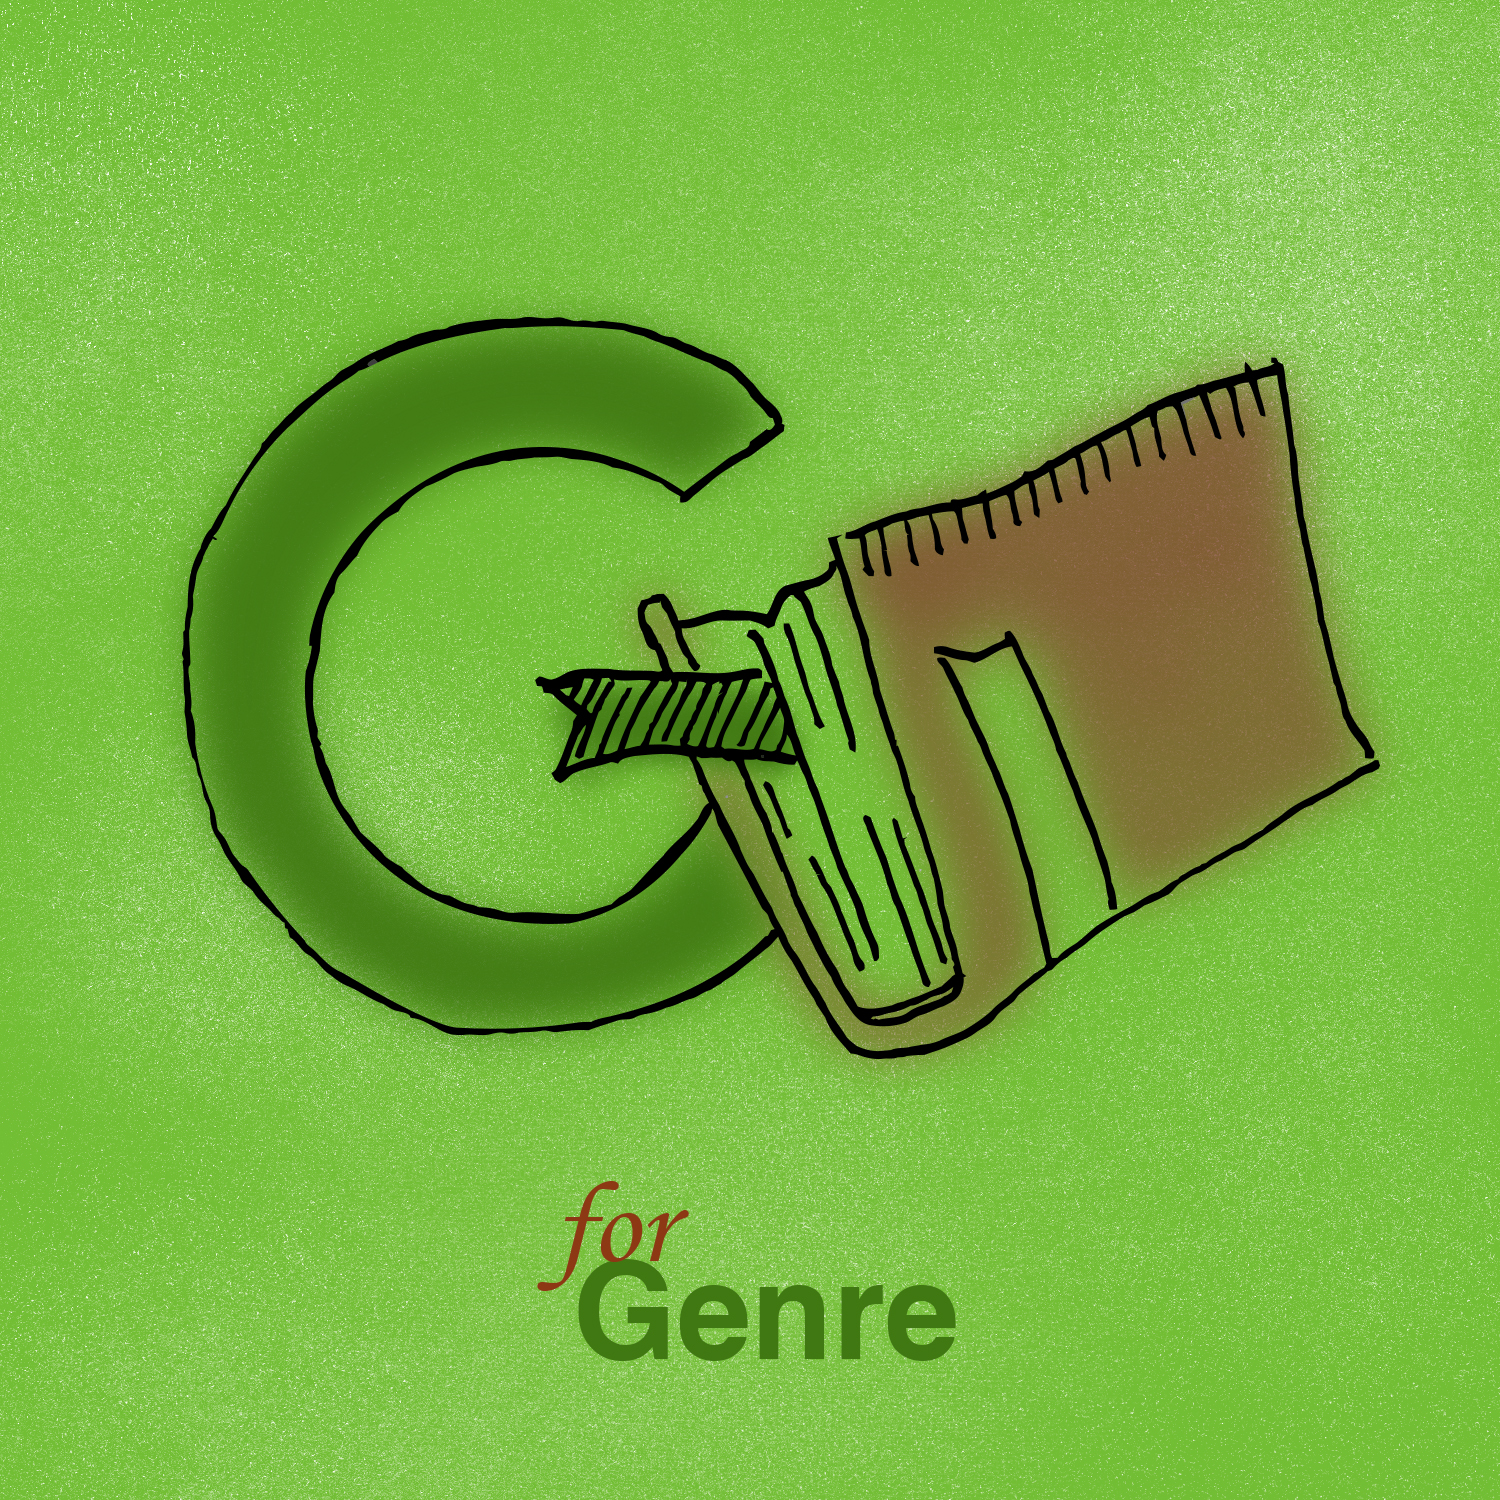 Sunday School G is for Genre